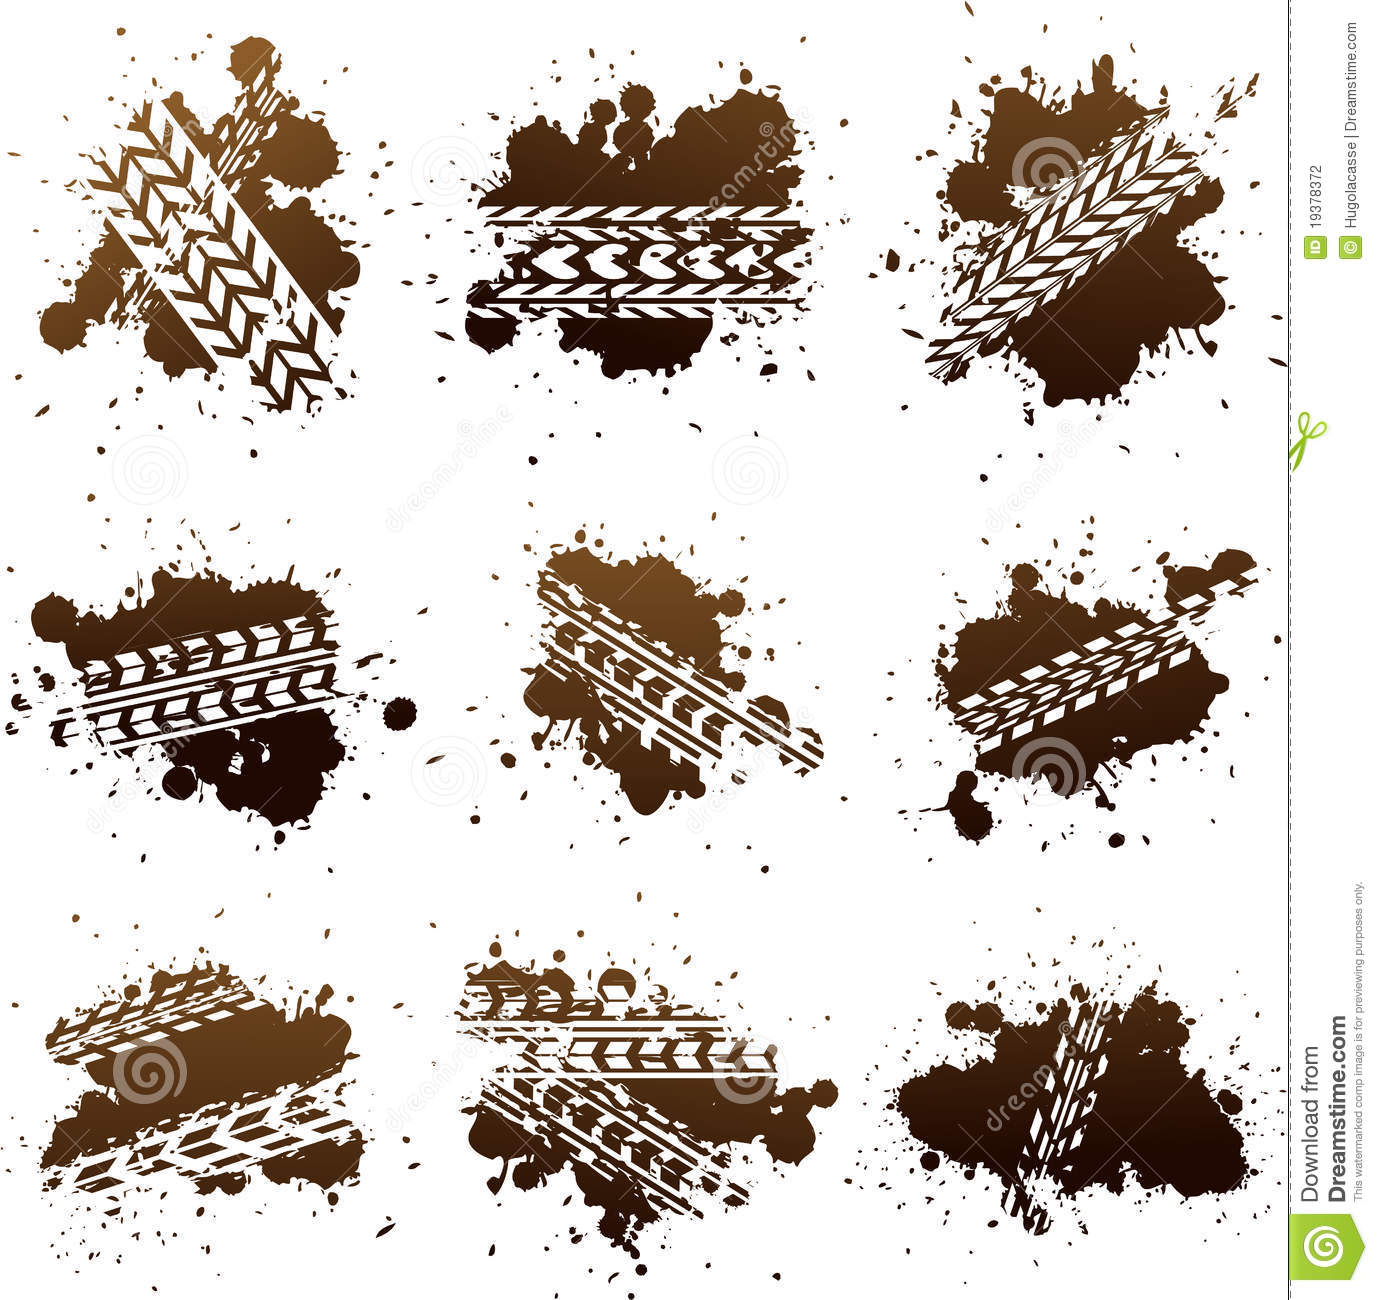 Dirty mud tire tracks clip art illustration.